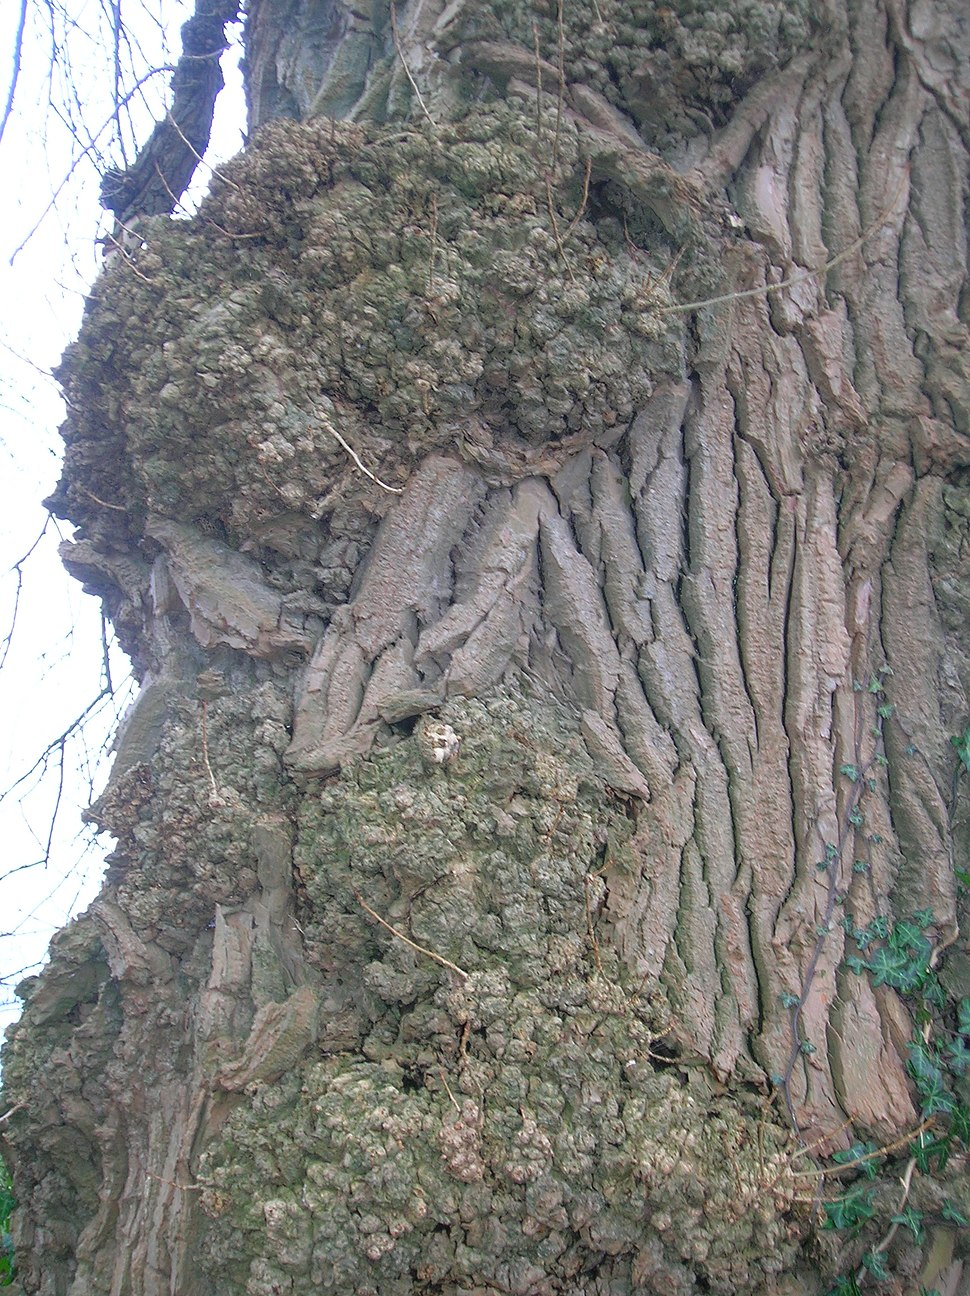 Burr on Black poplar